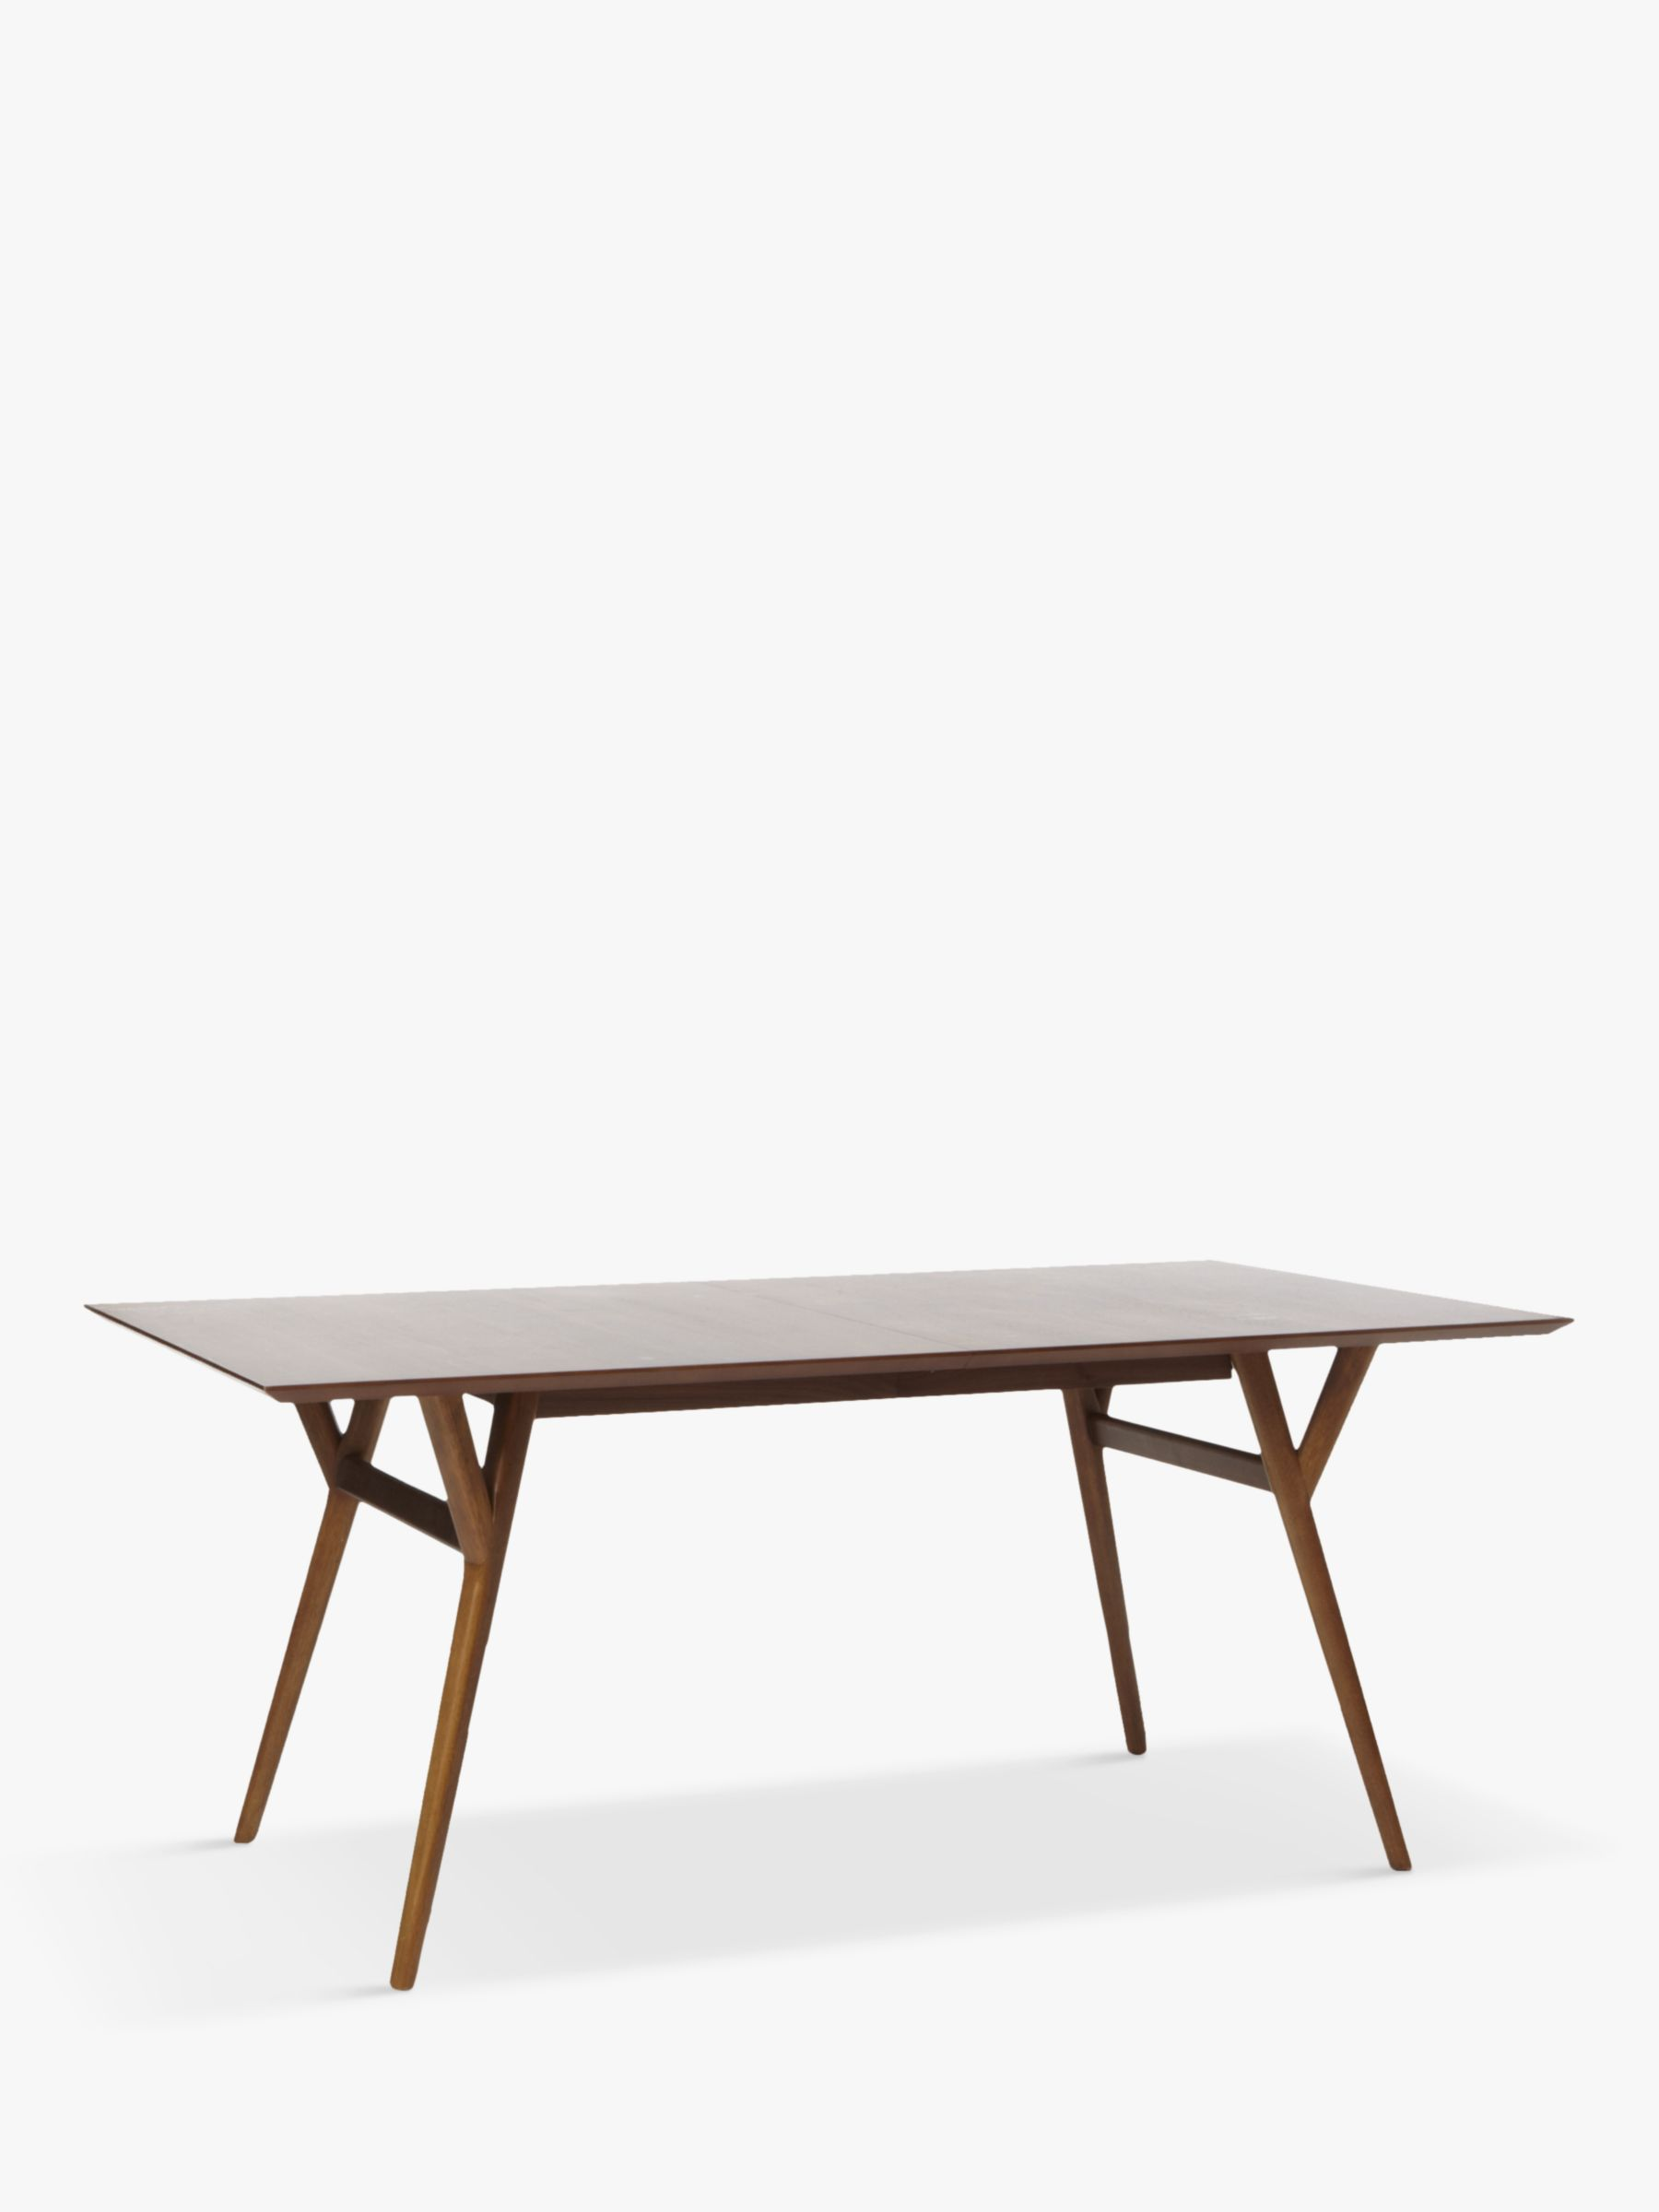 Image of: West Elm Mid Century 8 10 Seater Extending Dining Table Walnut At John Lewis Partners